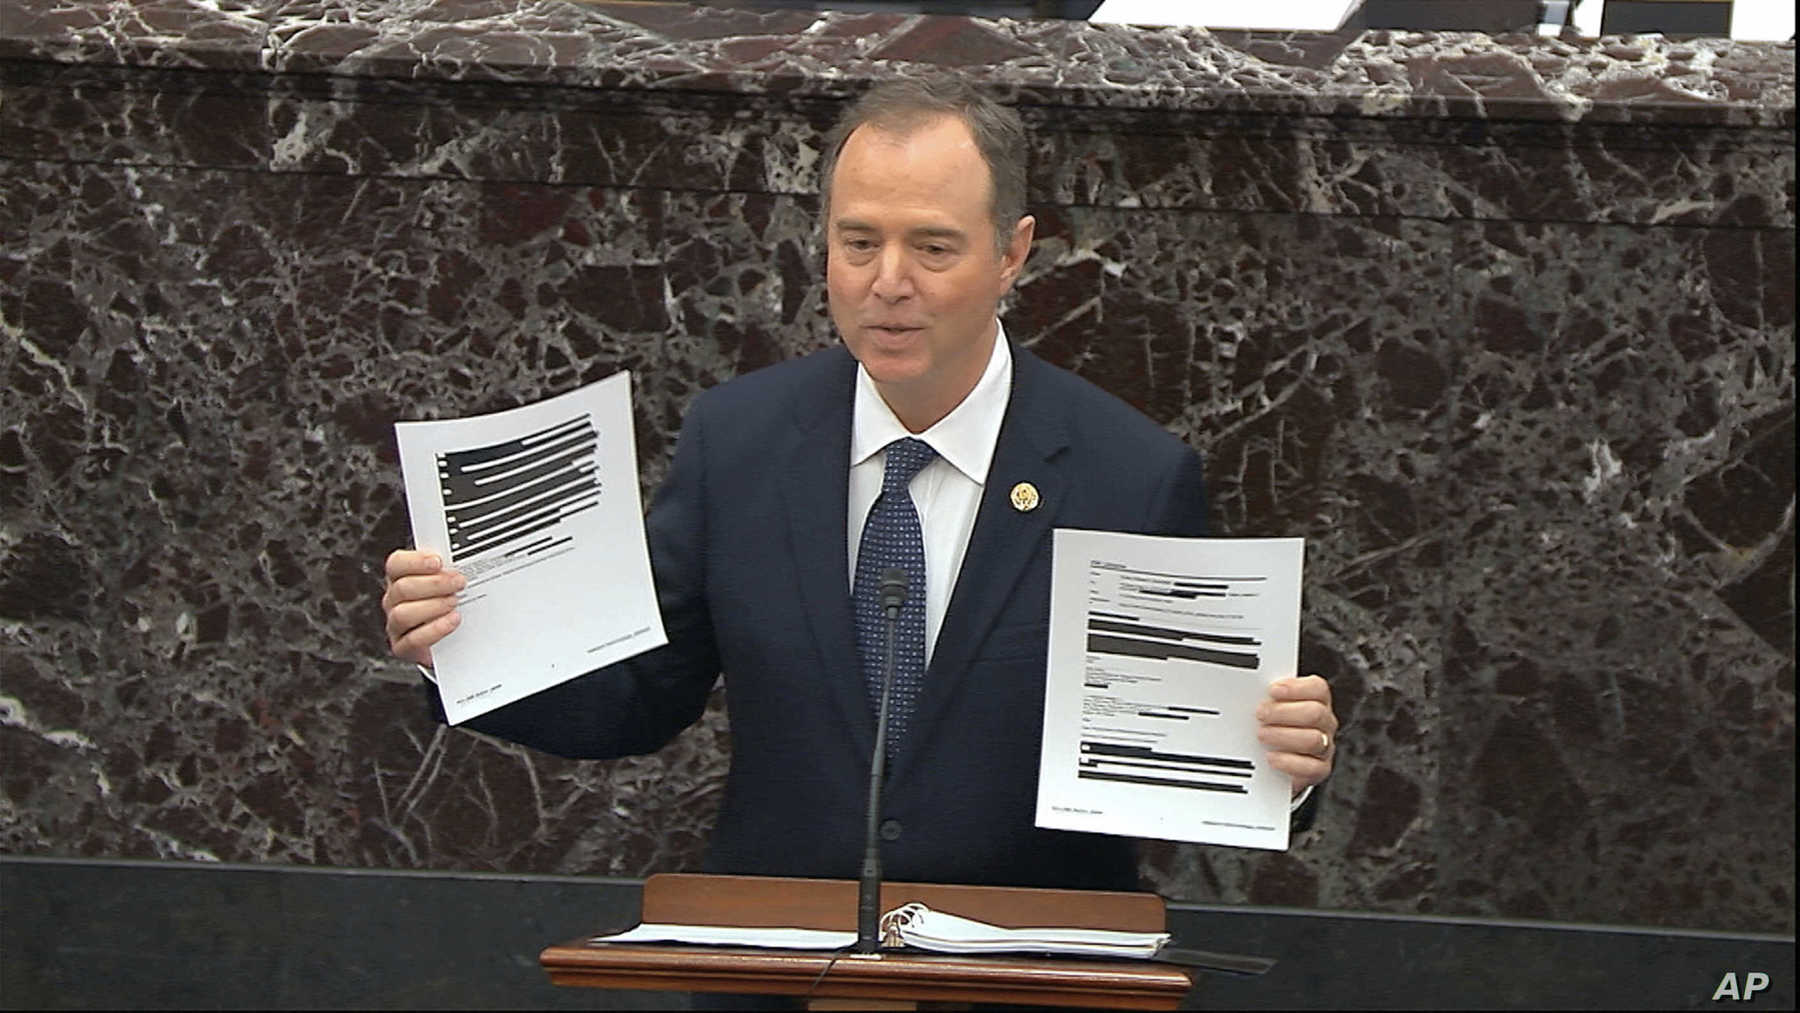 In this image from video, House impeachment manager Rep. Adam Schiff holds redacted documents as he speaks during the impeachment trial of President Donald Trump, in the Senate at the Capitol in Washington, Jan. 22, 2020. AP photo